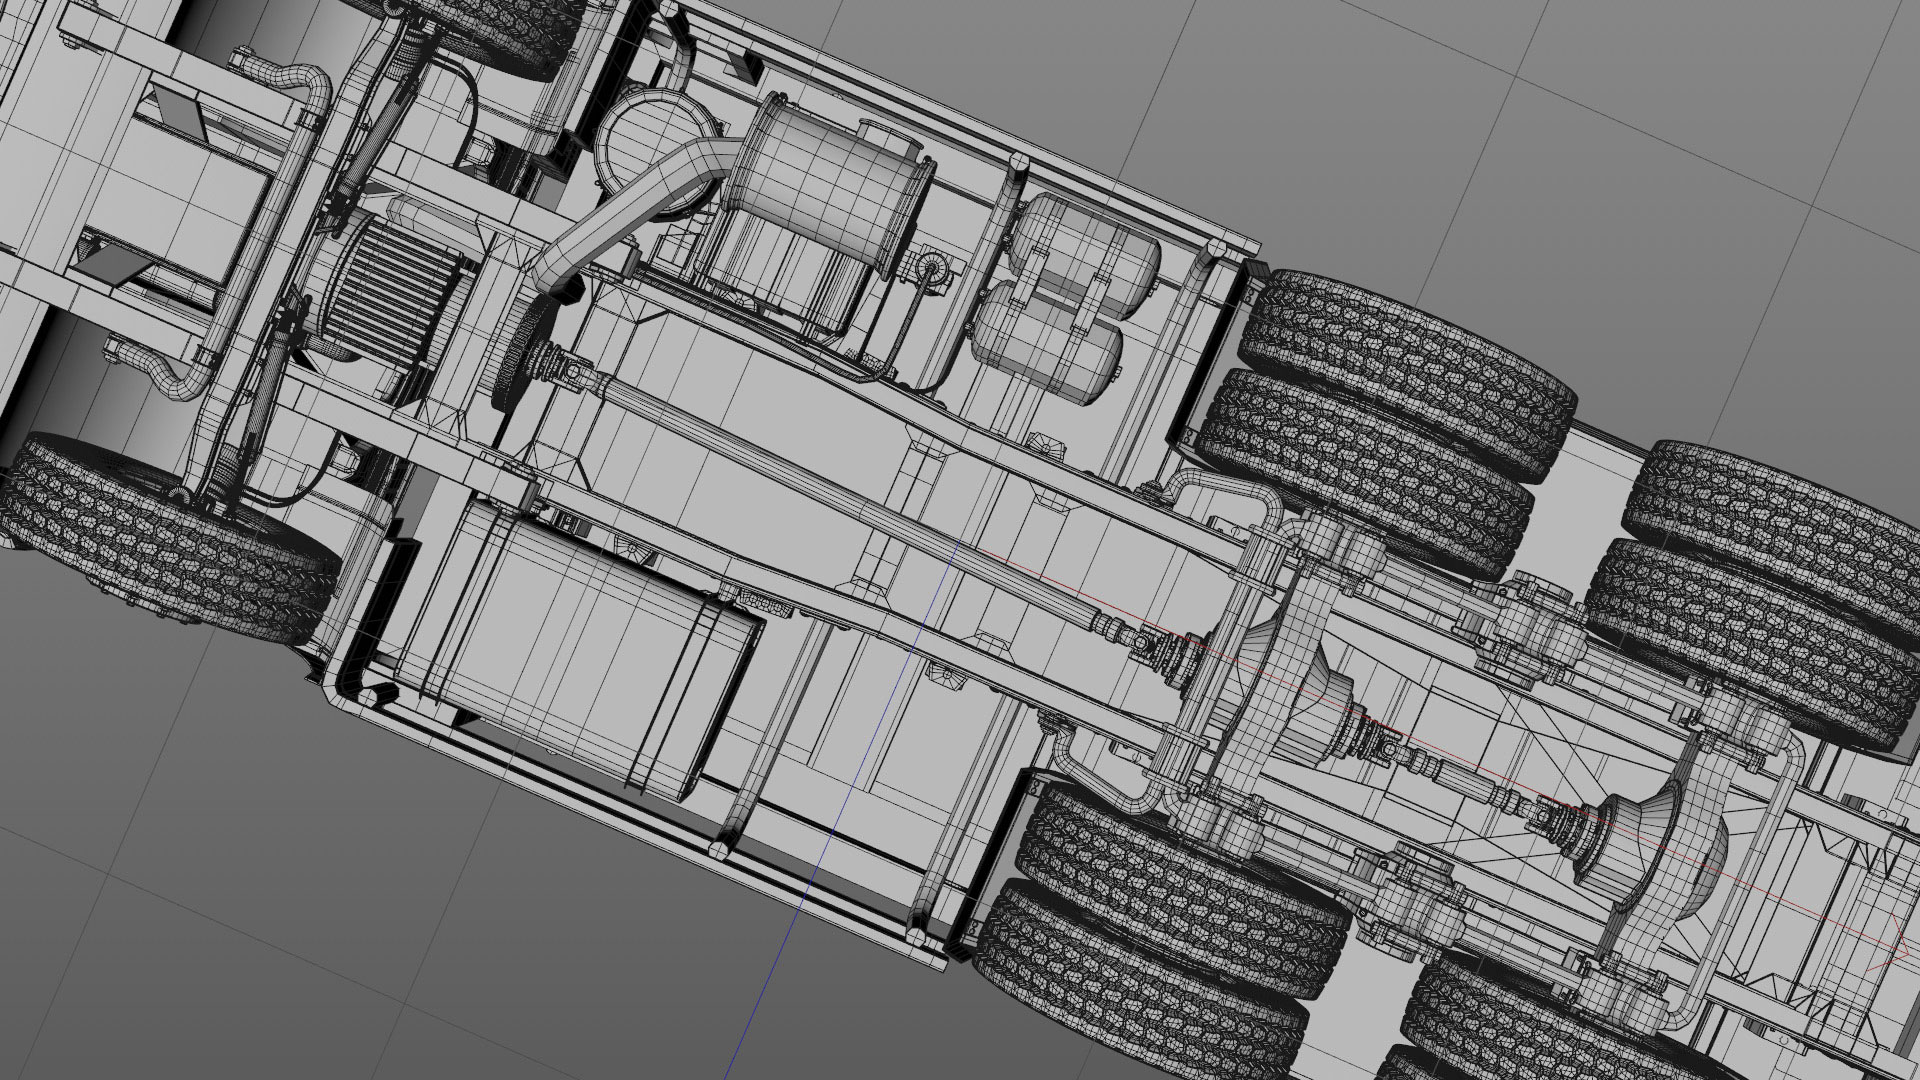 Projects_CharityWater_process_Drilling_Rig_model_03_C4Dviewport